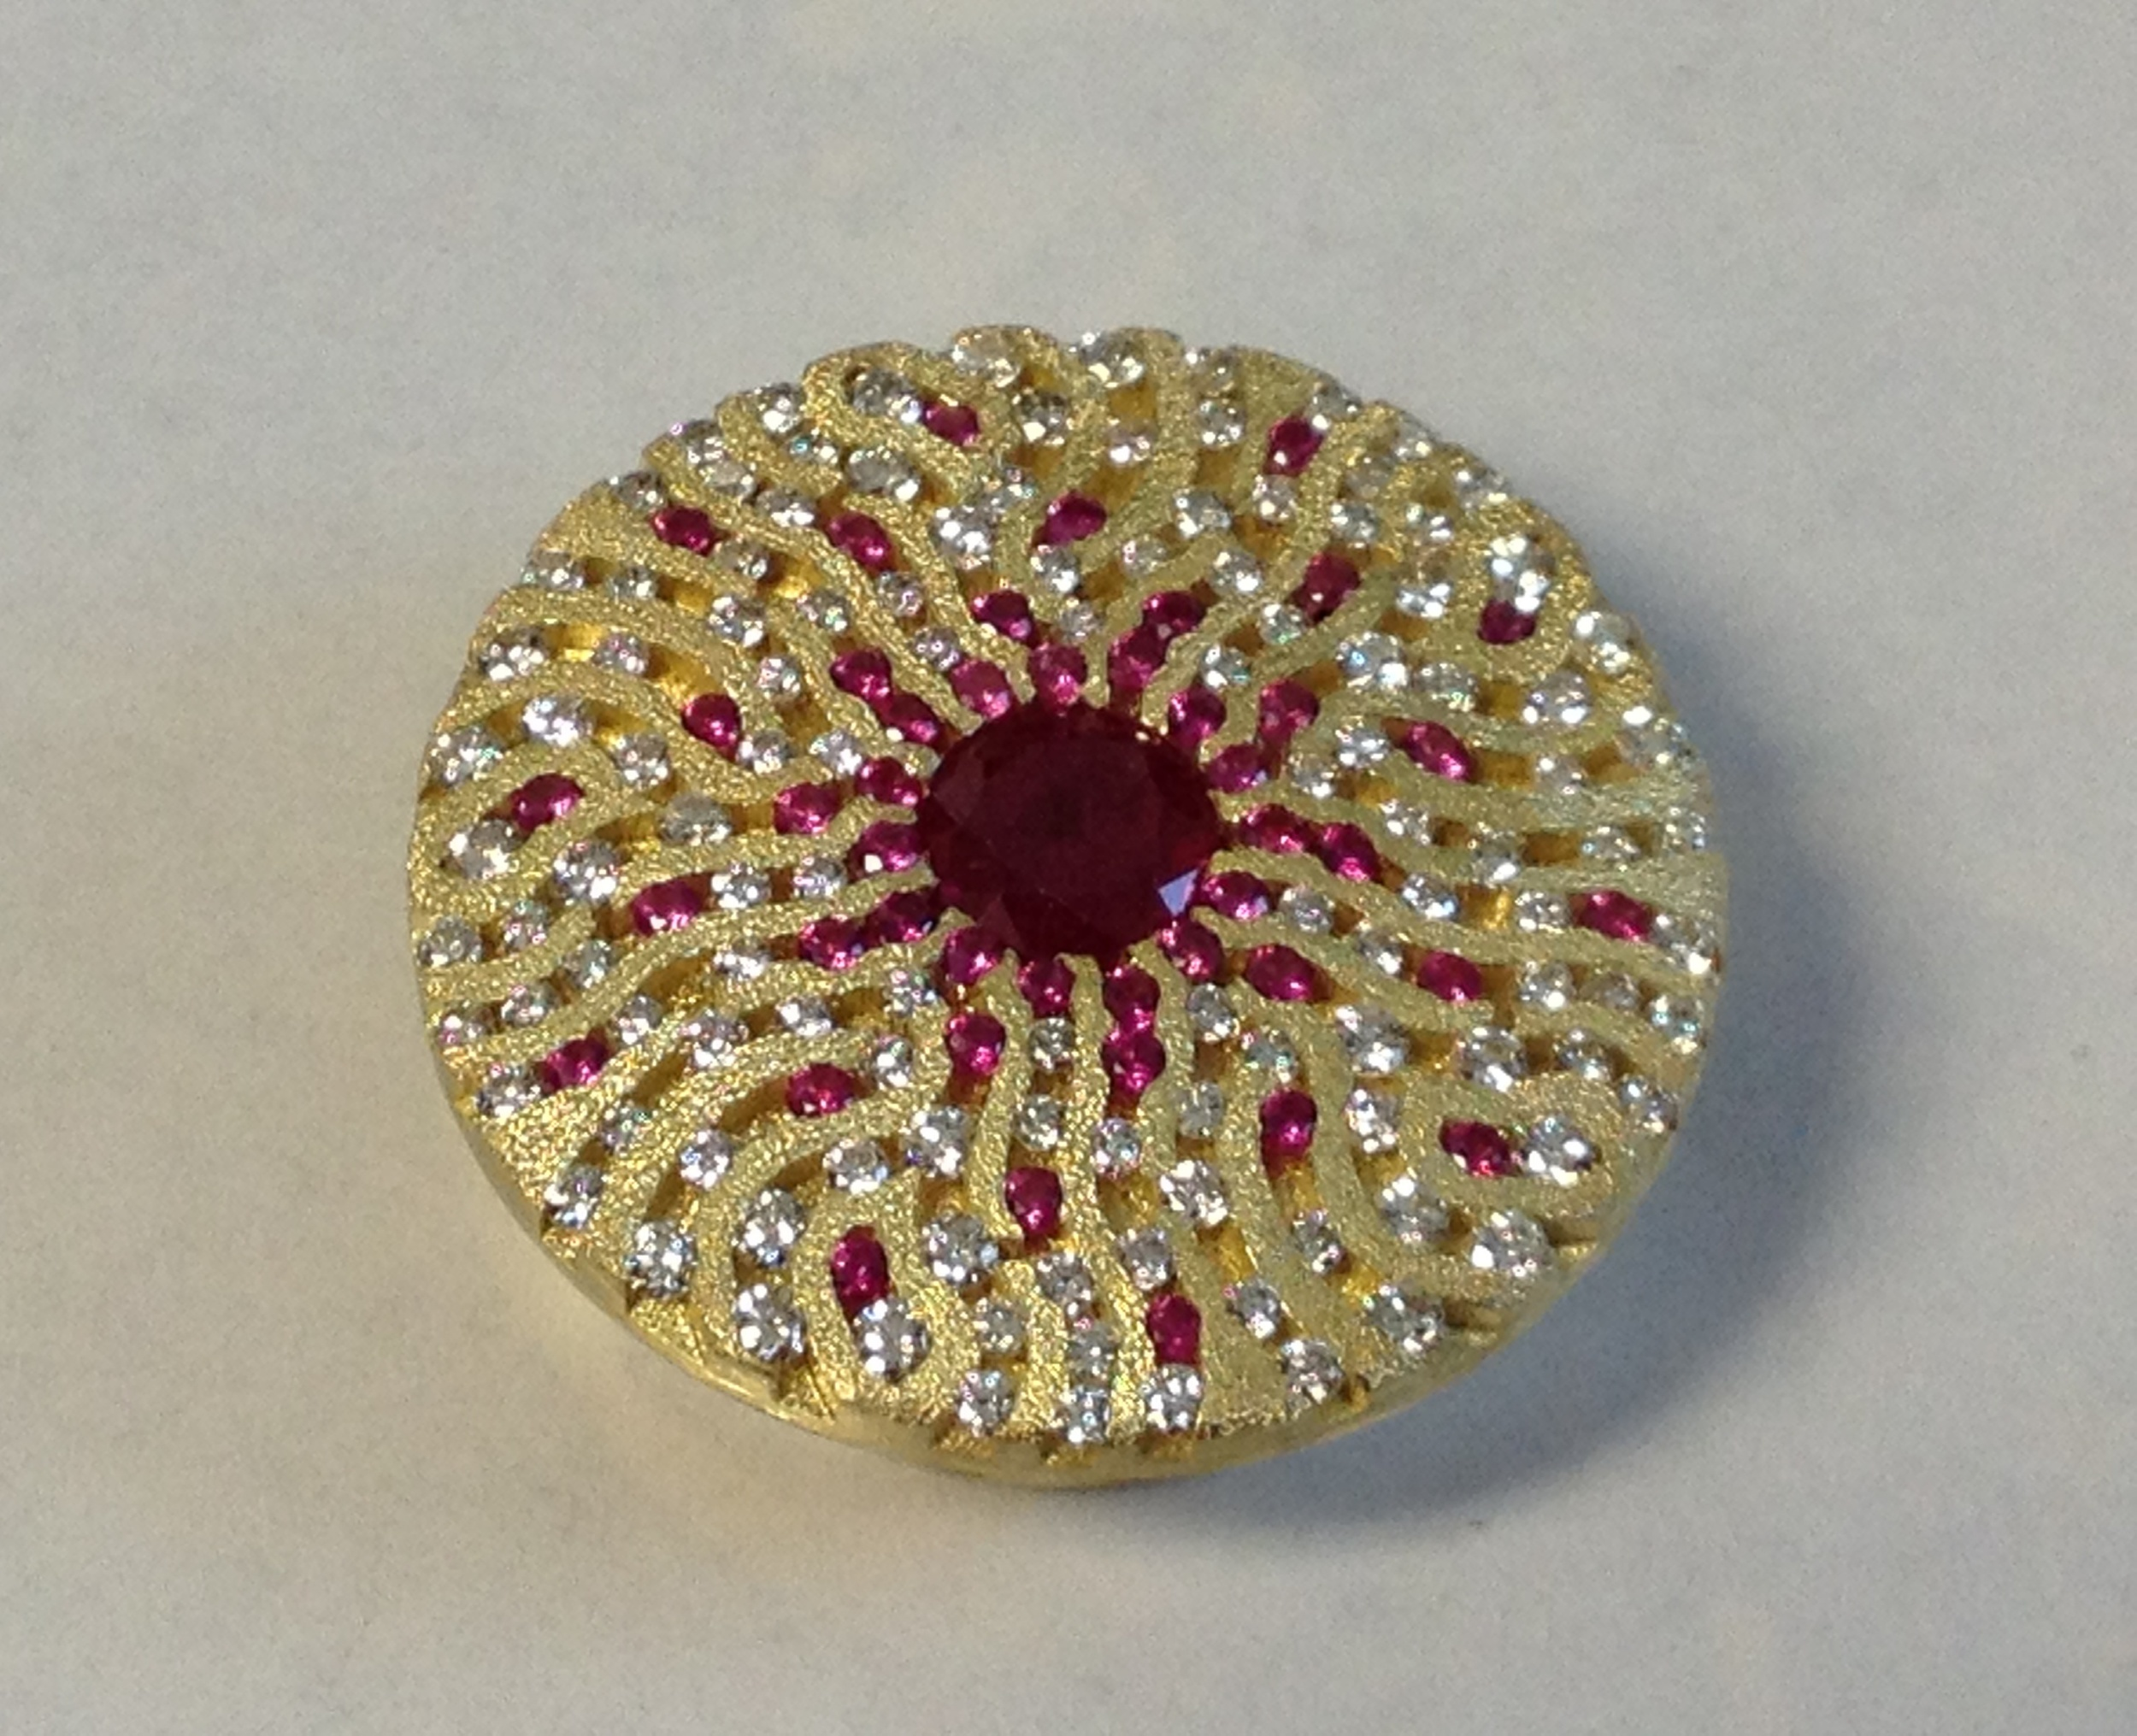 18k Yellow Gold Slide Pendant for a 9.00mm round Burmese Ruby, accented by round full cut 1.30 mm ruby and diamond melee.  Private Collection